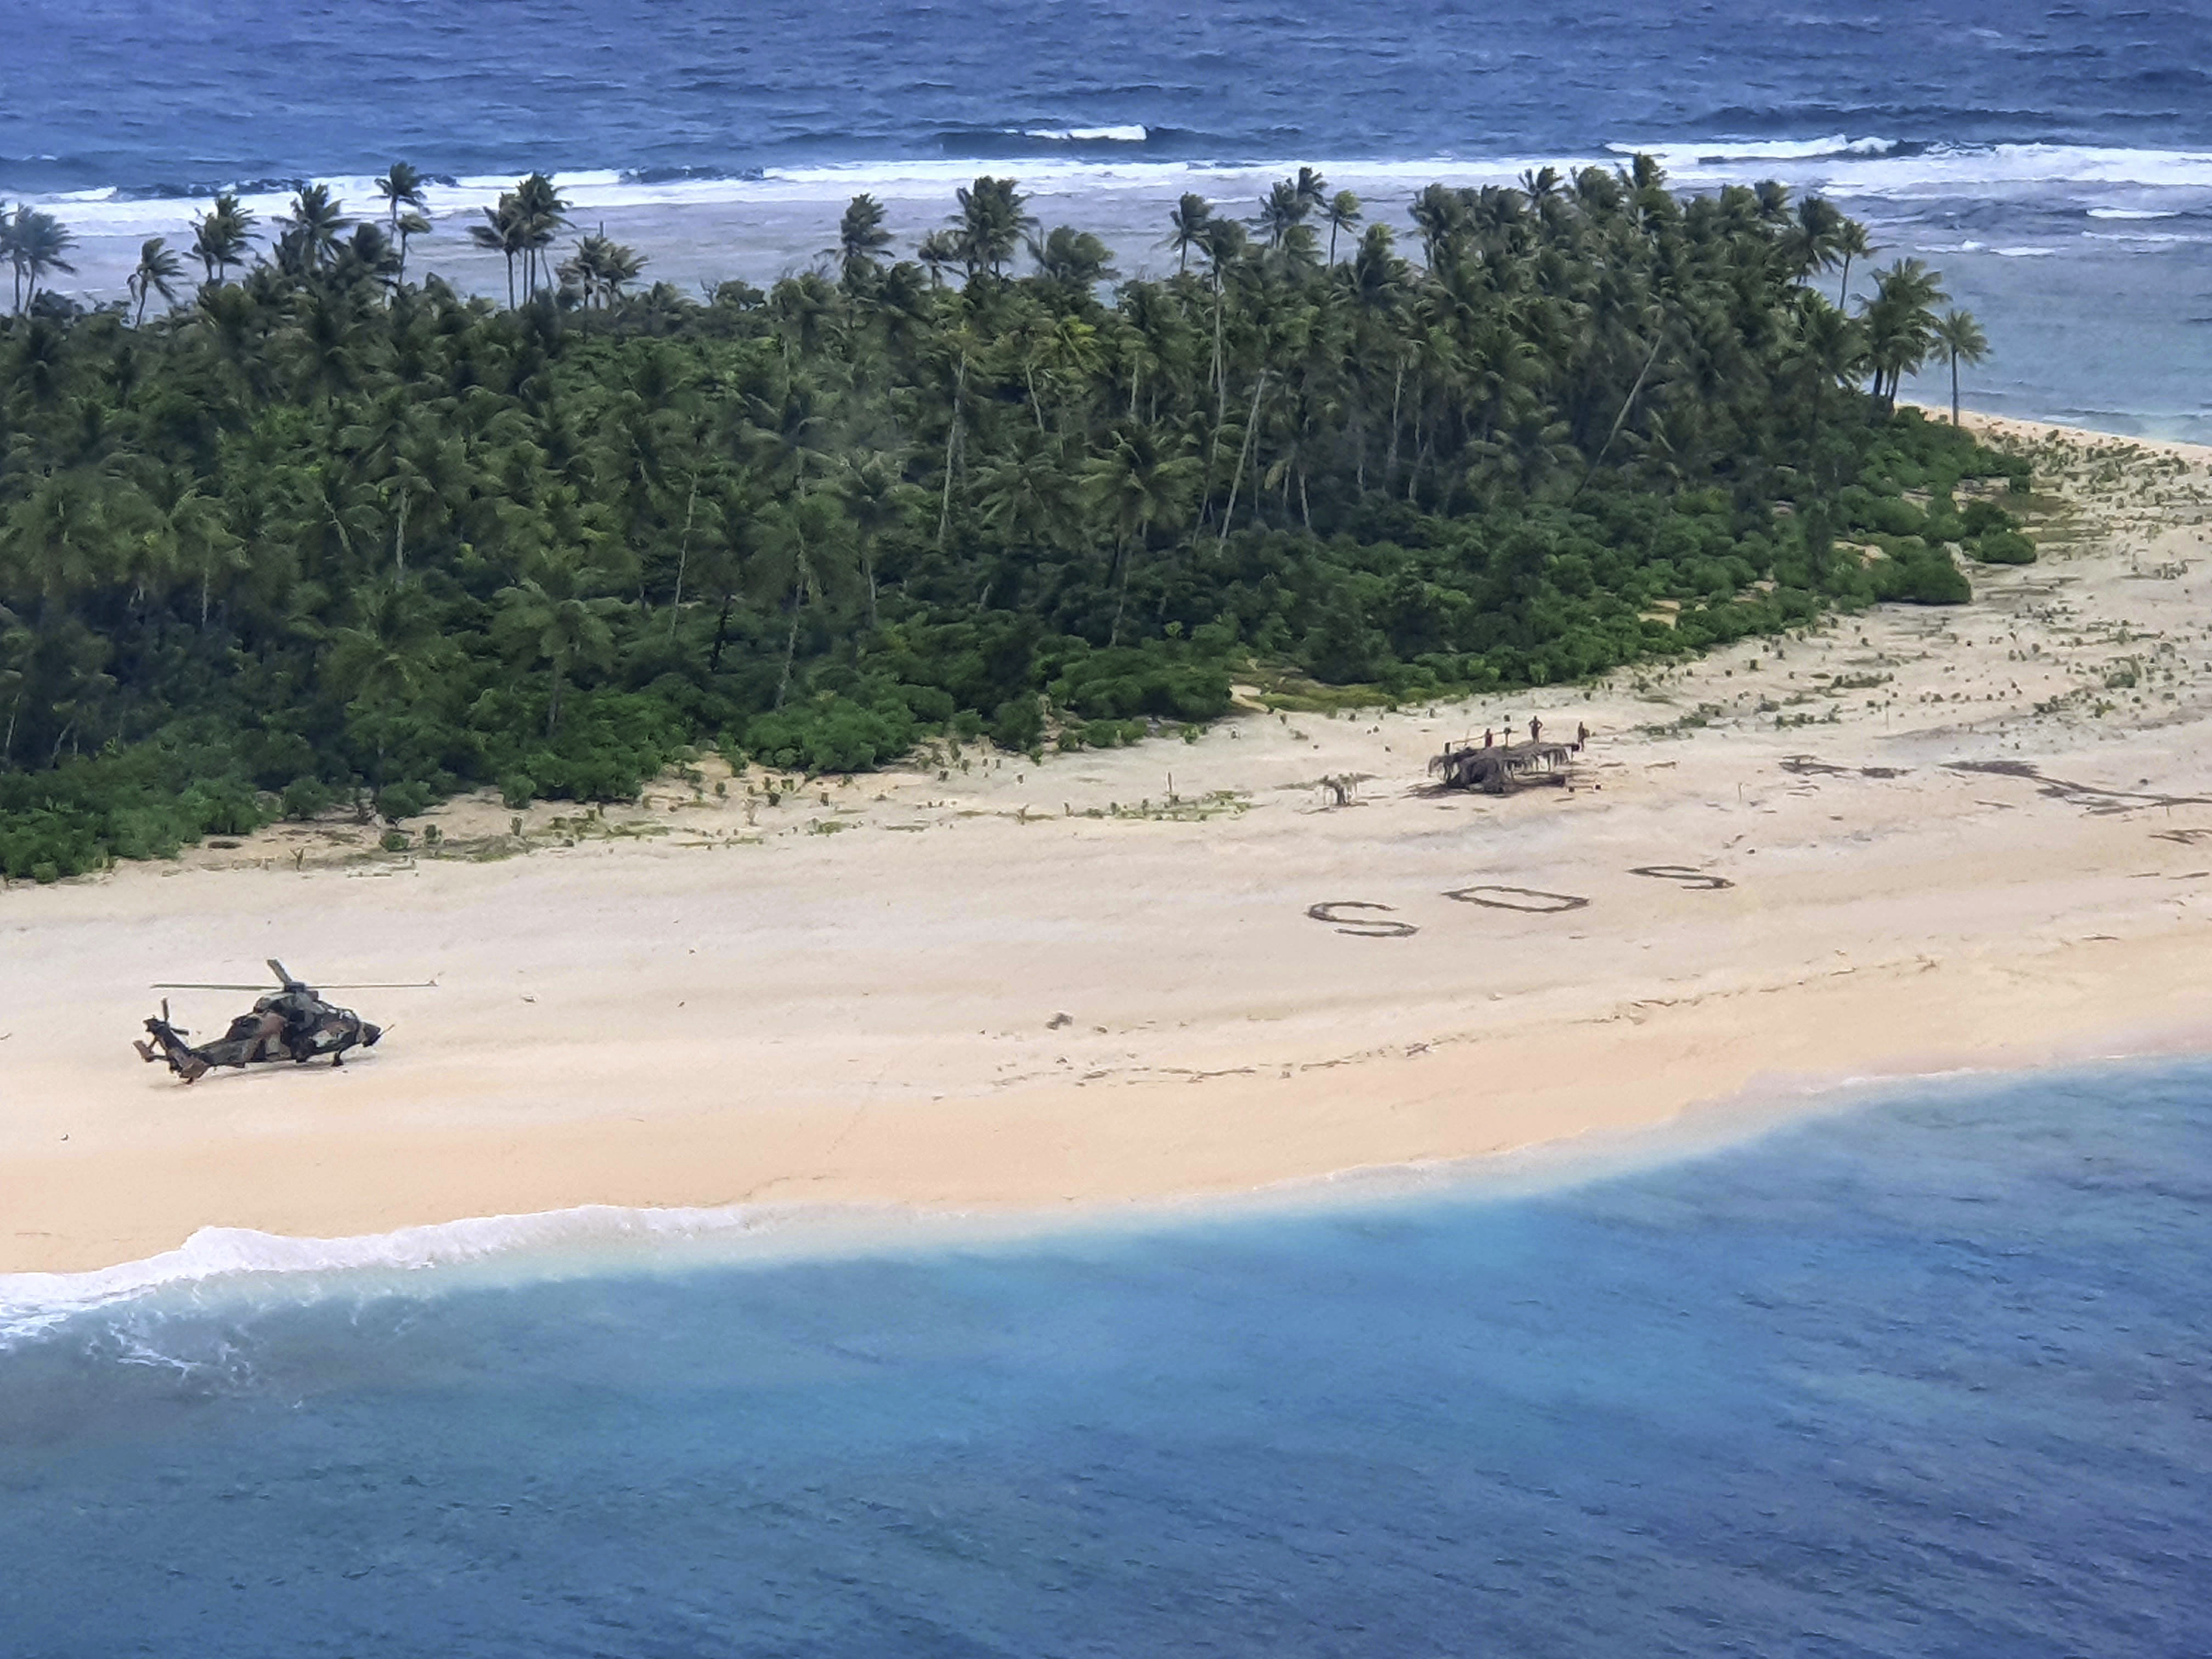 In this photo provided by the Australian Defence Force, an Australian Army helicopter lands on Pikelot Island in the Federated States of Micronesia, where three men were found, Sunday, Aug. 2, 2020, safe and healthy after missing for three days. The men were missing in the Micronesia archipelago east of the Philippines for nearly three days when their  SOS  sign was spotted by searchers on Australian and U.S. aircraft, the Australian defense department said.